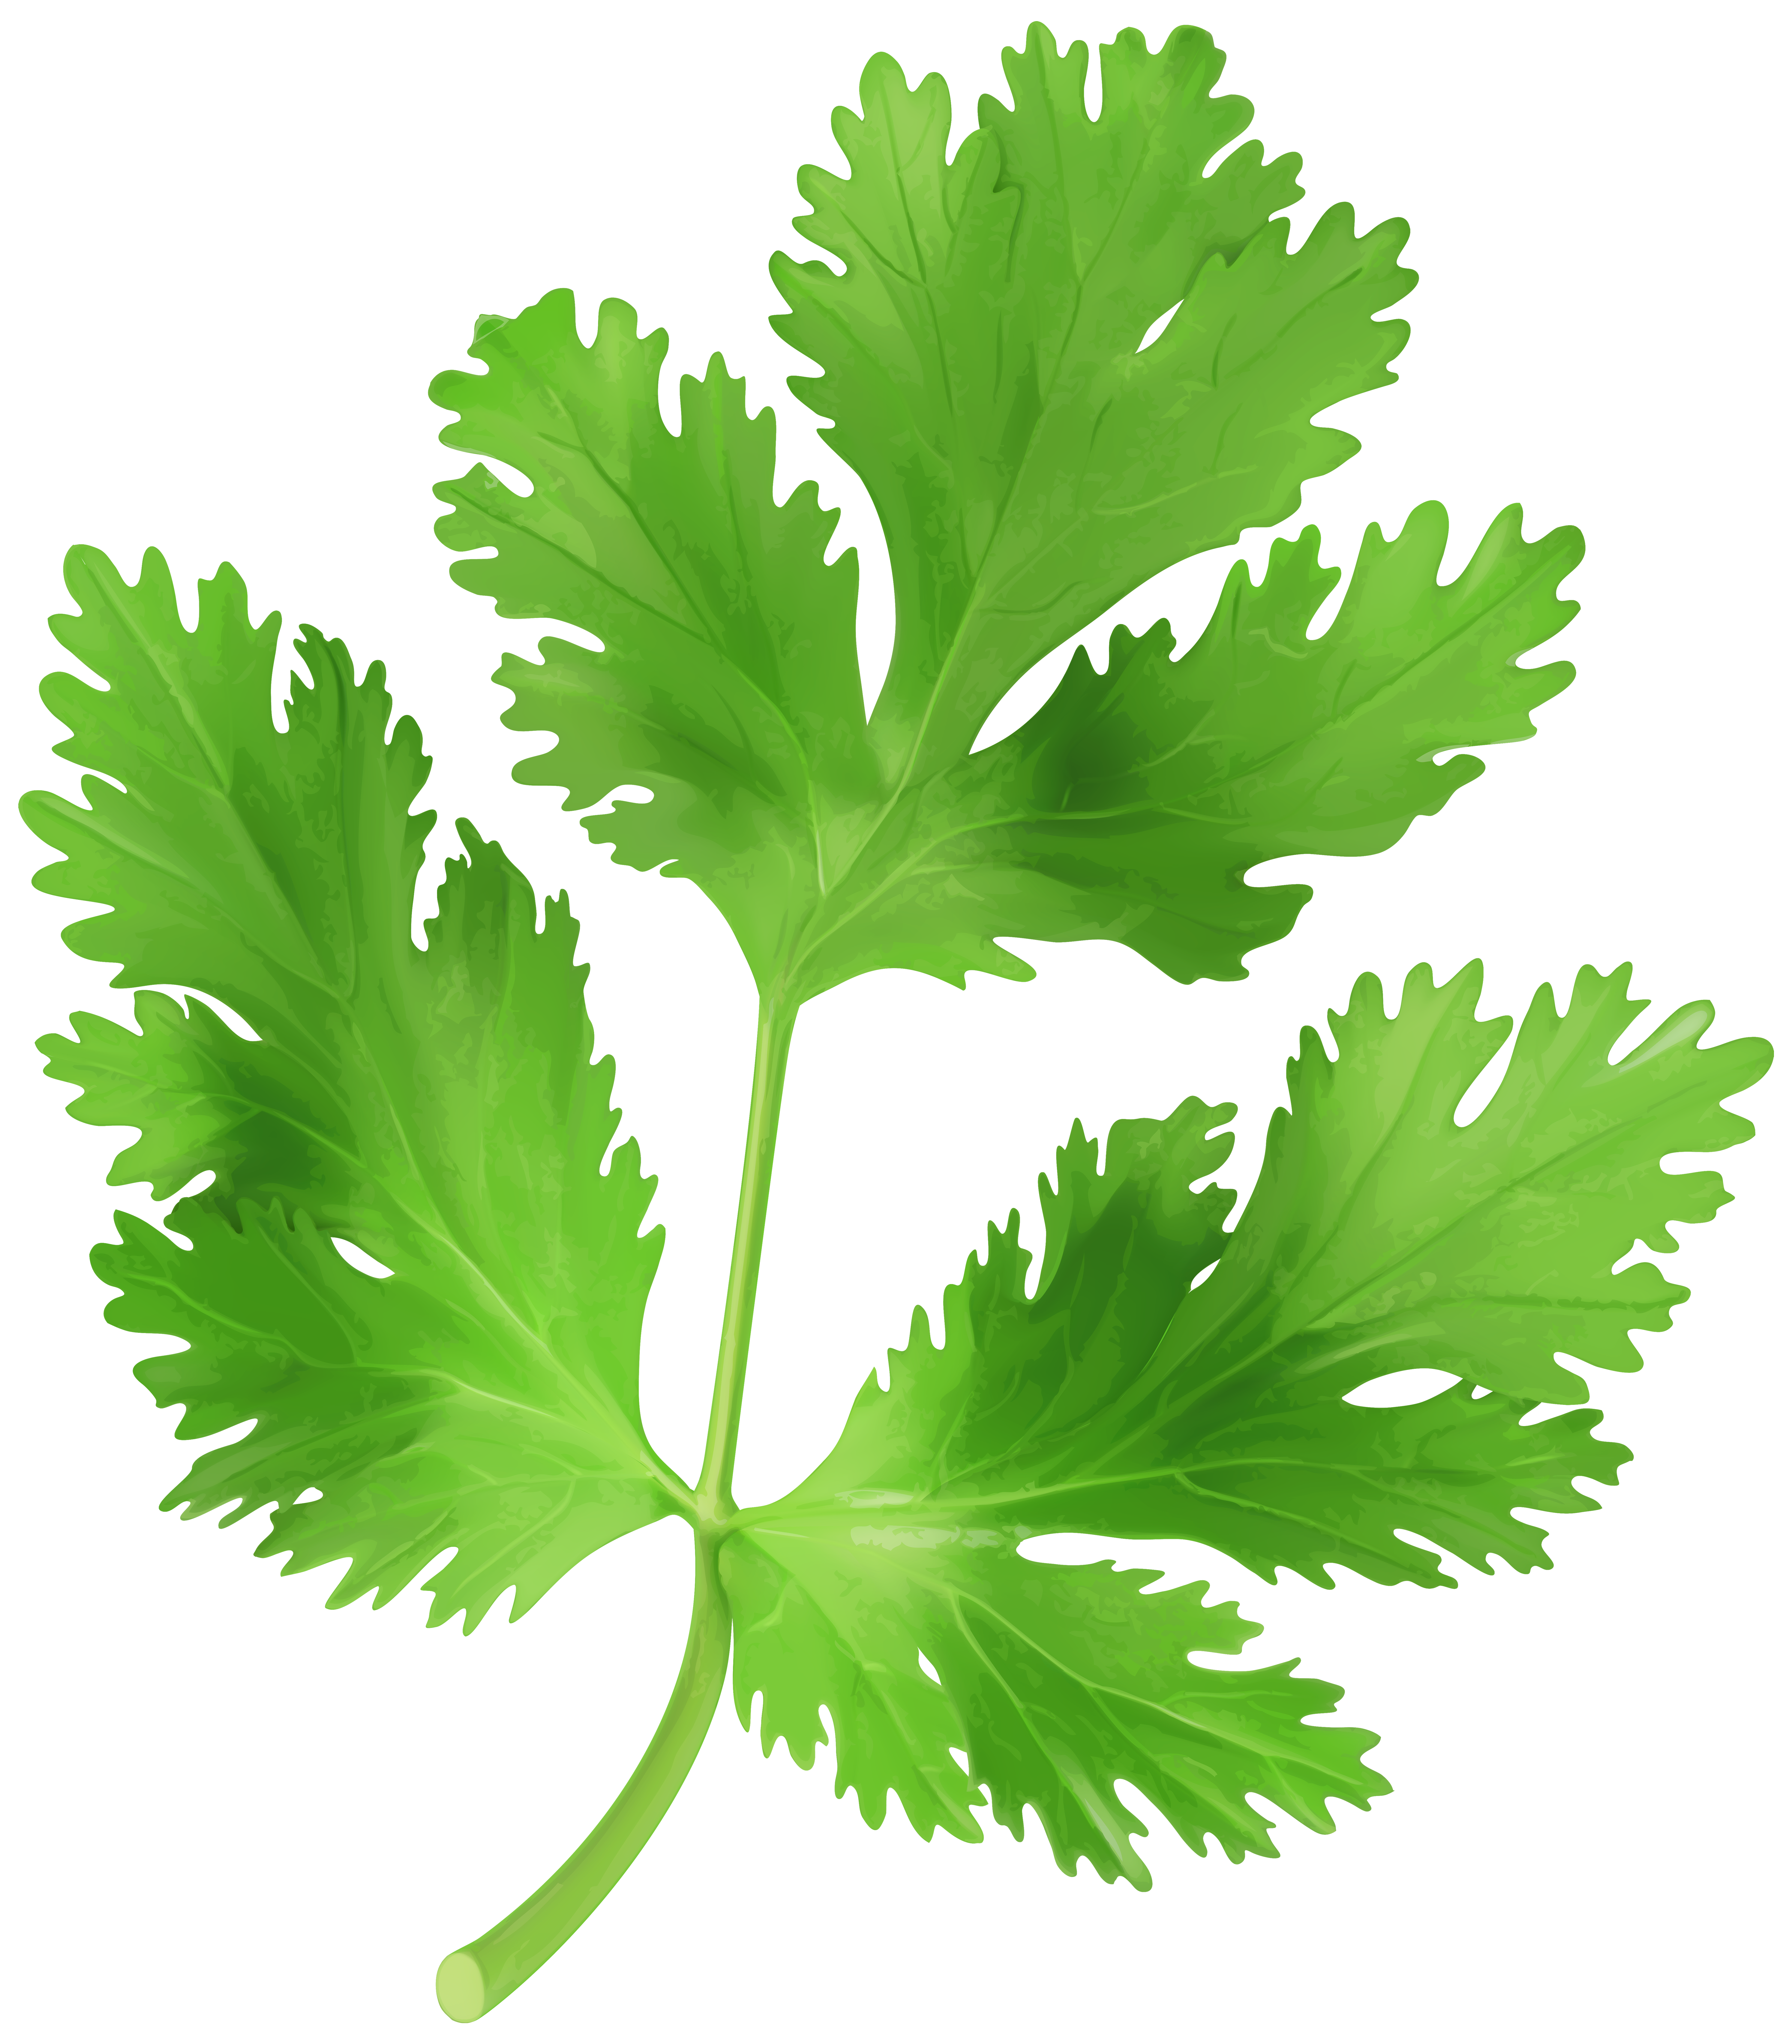 Images of chopped png. Garlic clipart parsley